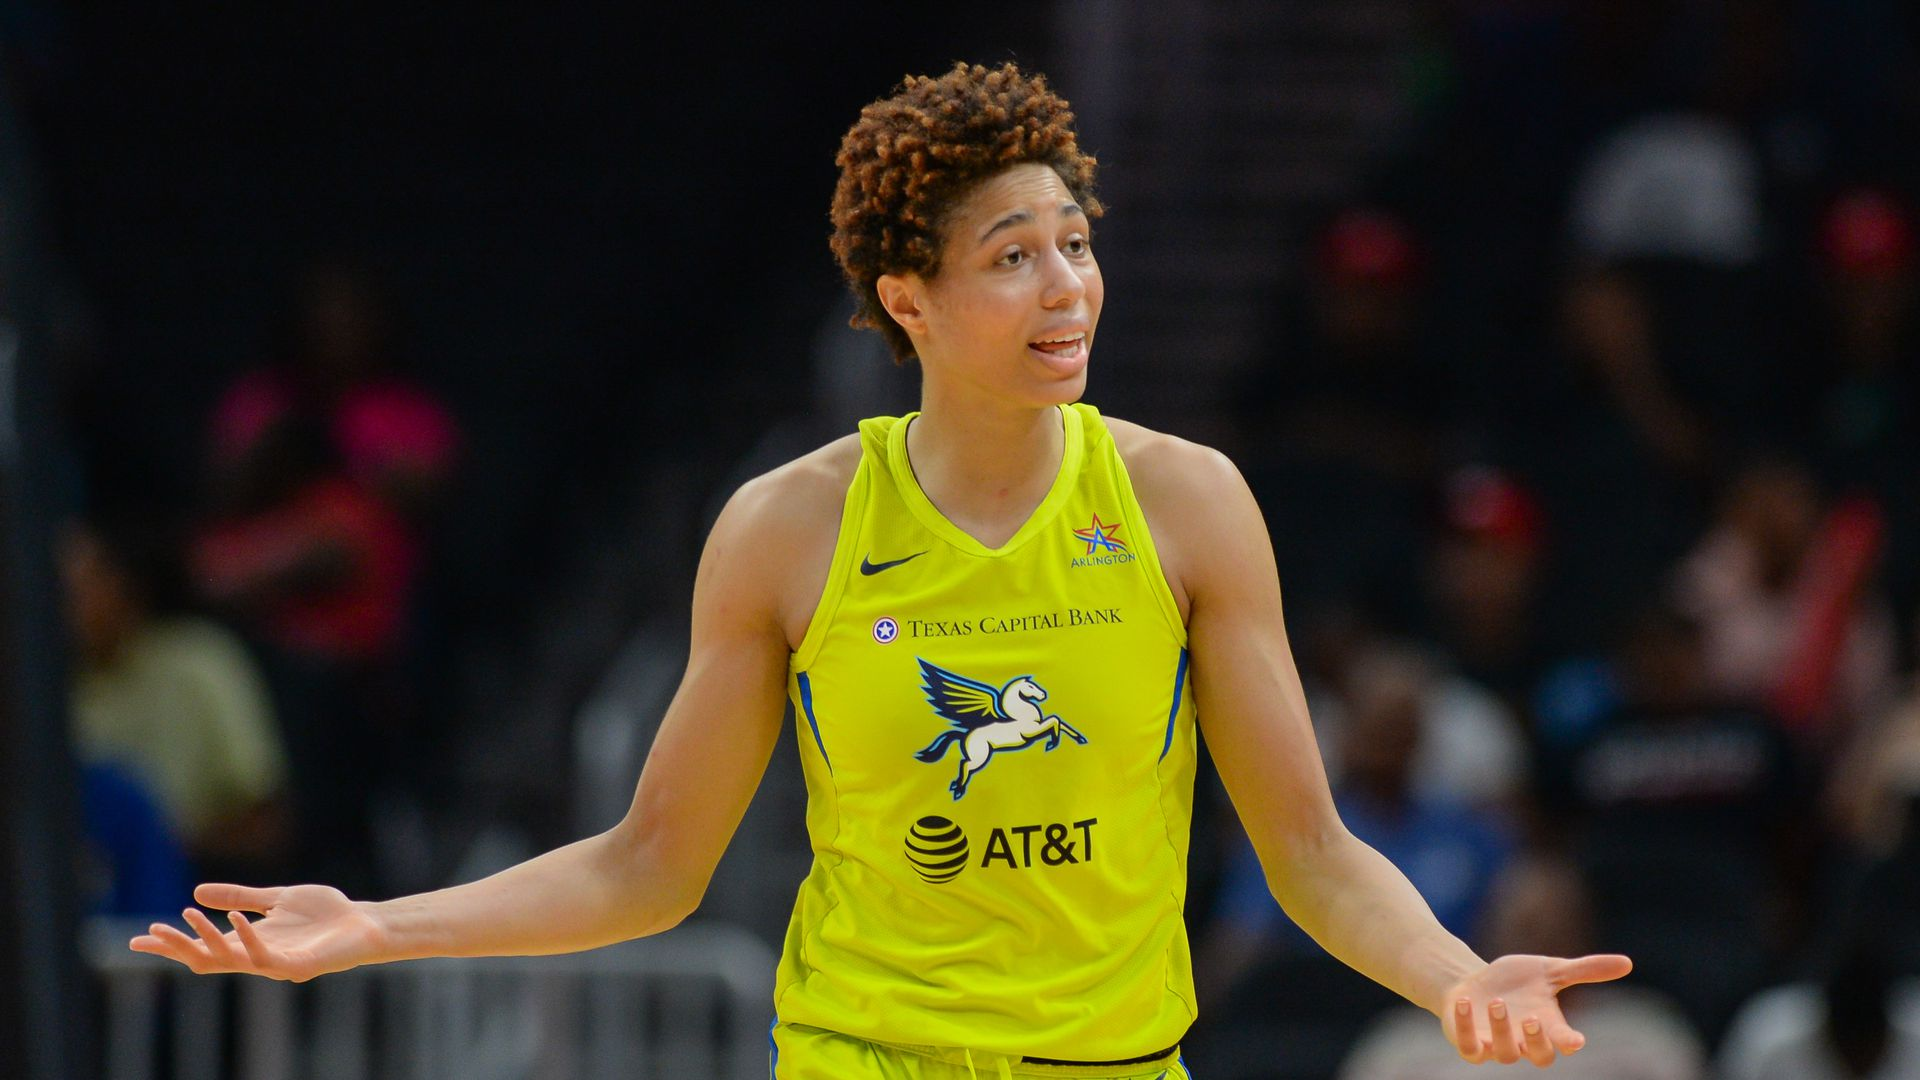 Dallas Wings player